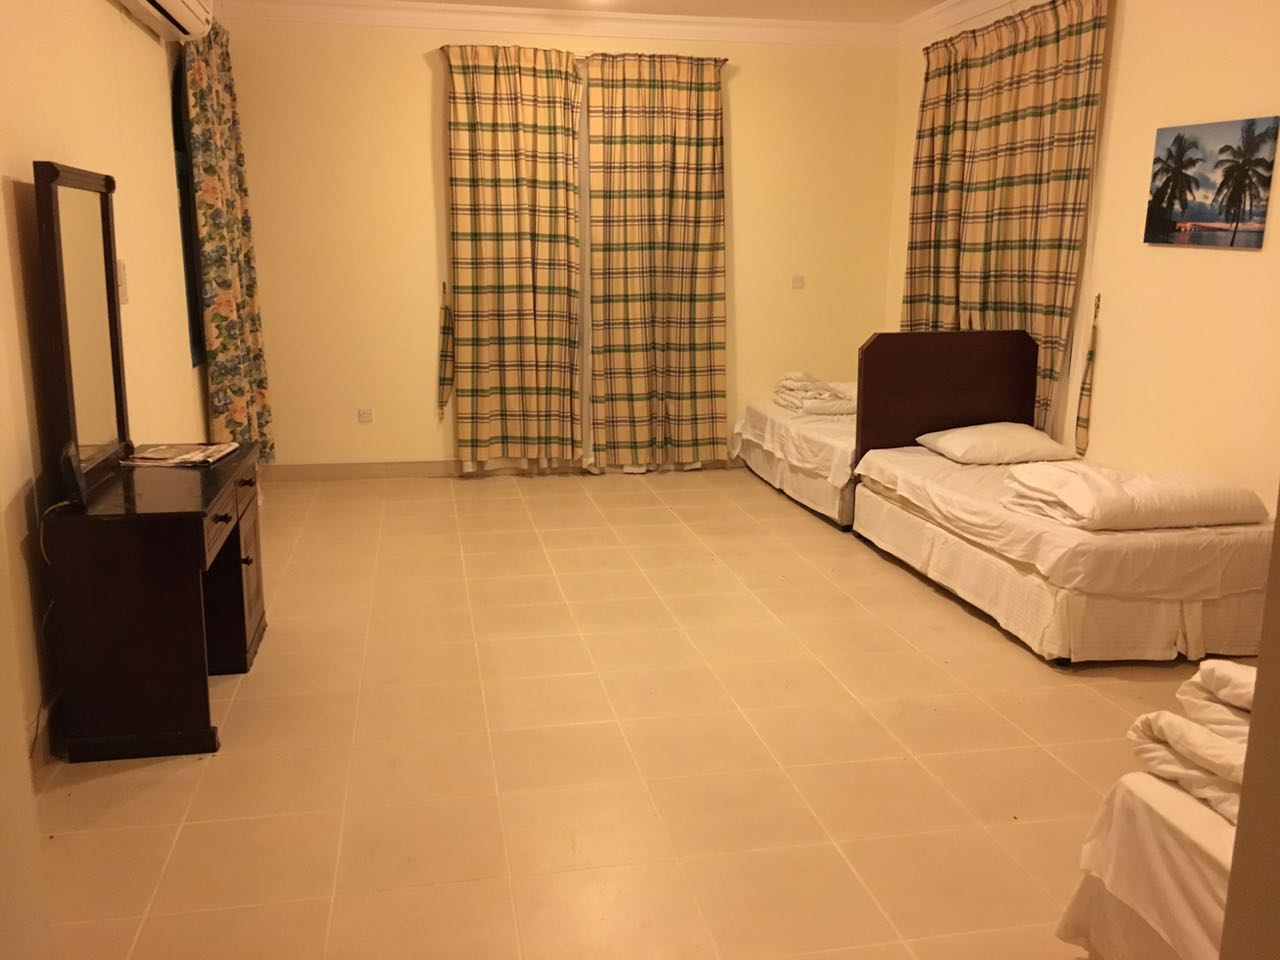 Executive Bachelor for Indian male available in Matar Qadeem Neat ...